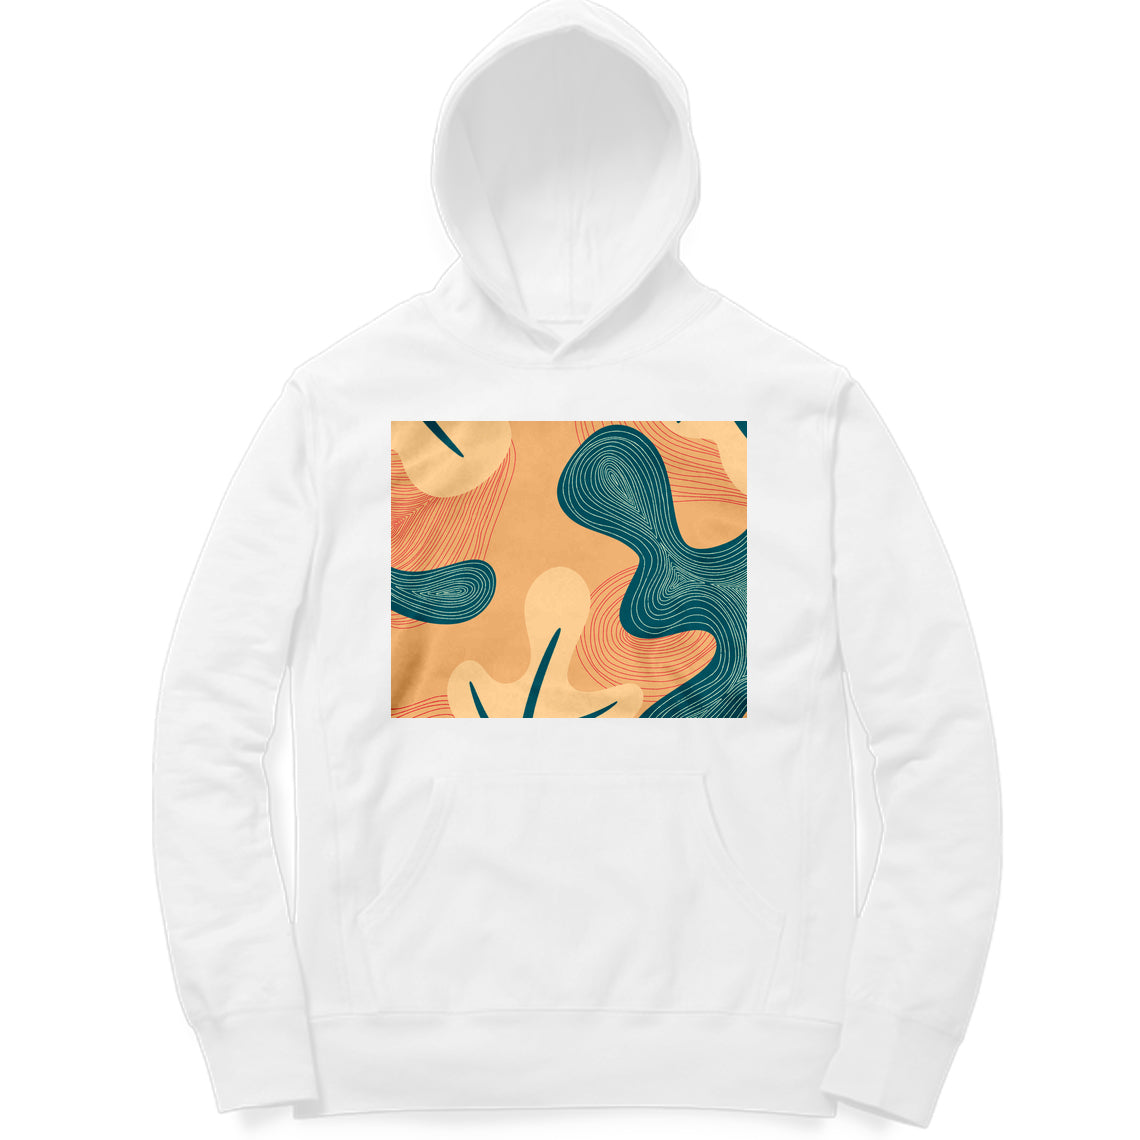 Fall Leaves Hoodies - Preetha Murthy